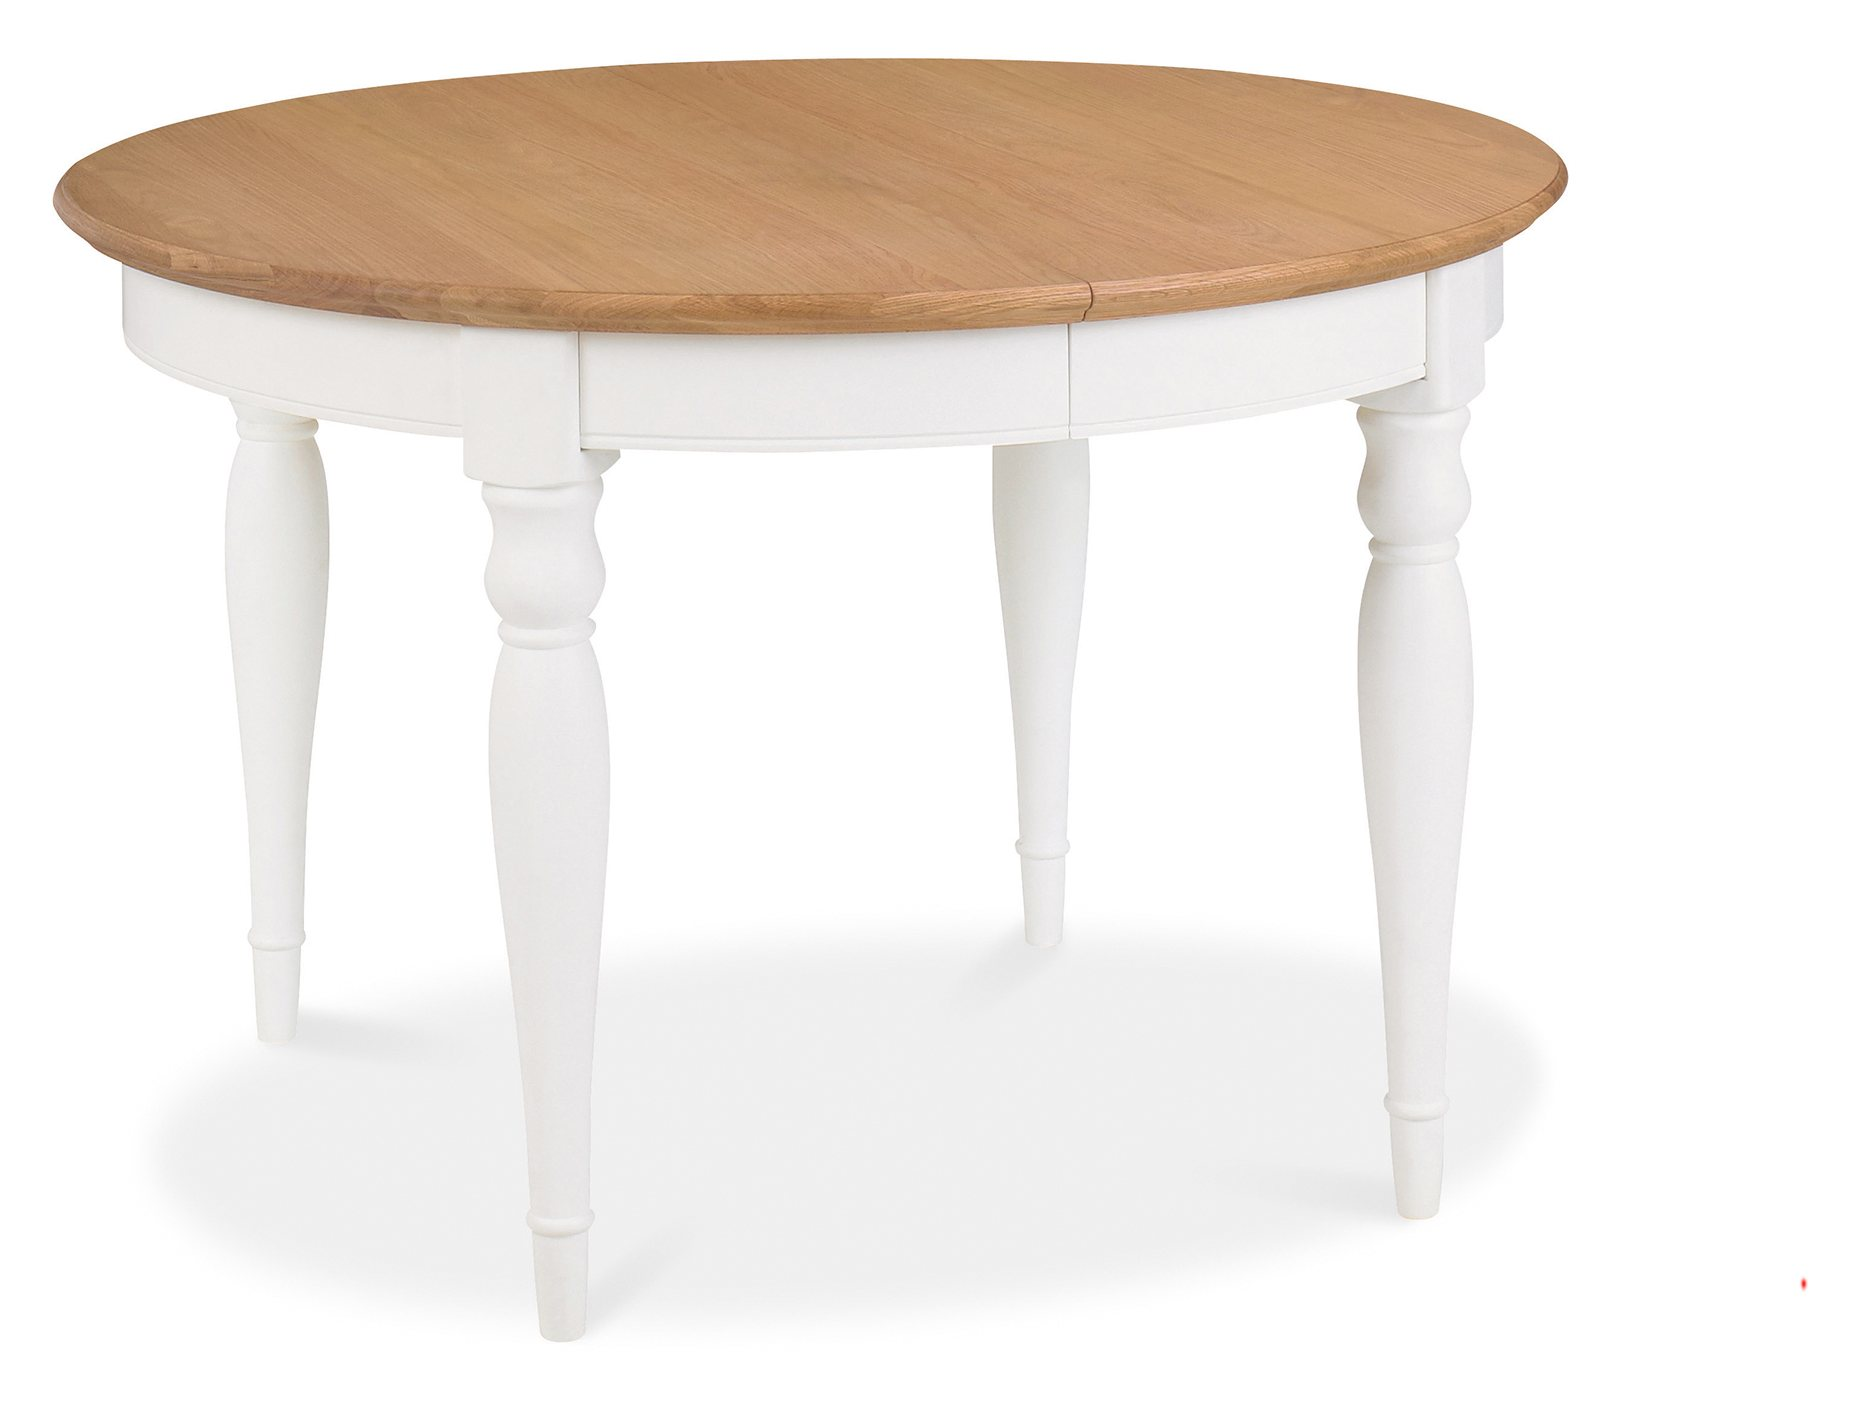 KYRA TWO TONE ROUND DINING TABLE CLOSED - L120cm x D120cm